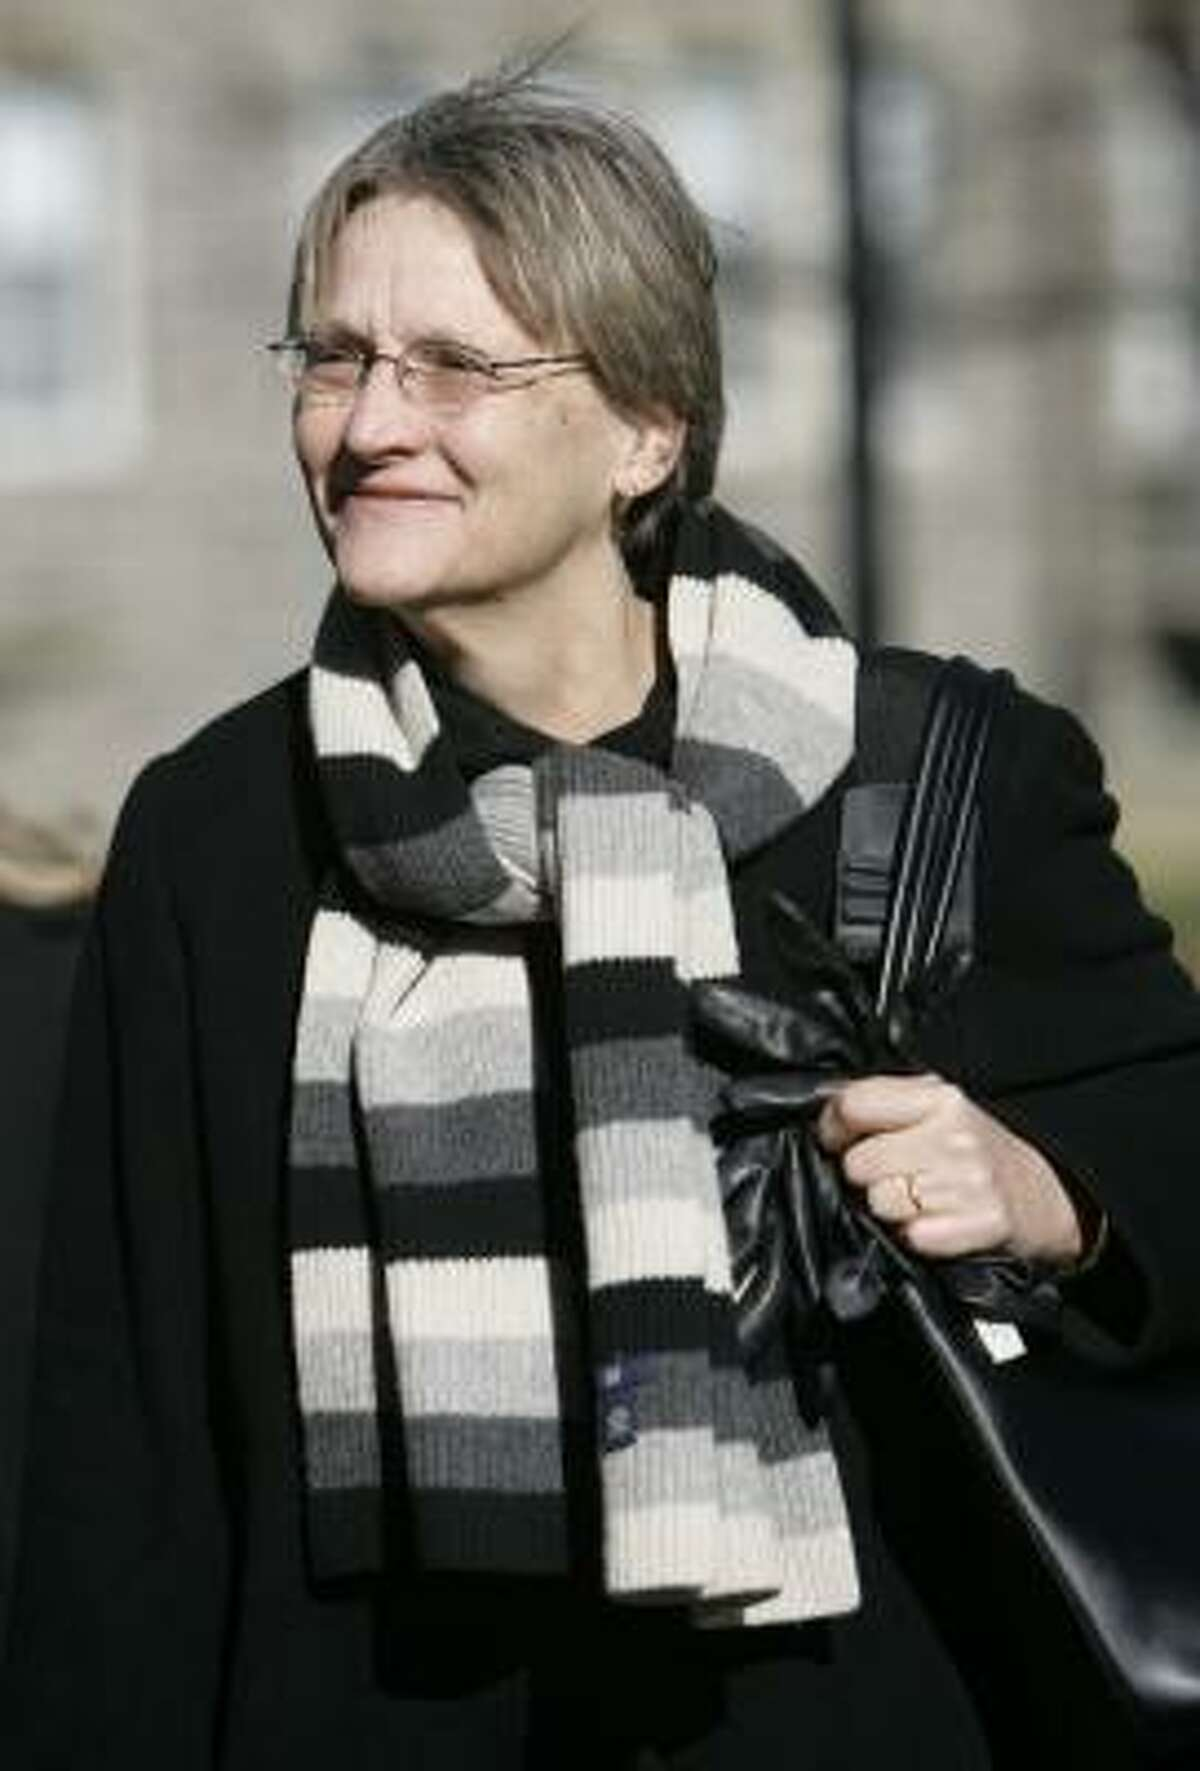 Drew Gilpin Faust, who's expected to be named as Harvard University's new president this weekend, is seen as more collegial than the school's controversial former chief Lawrence Summers.